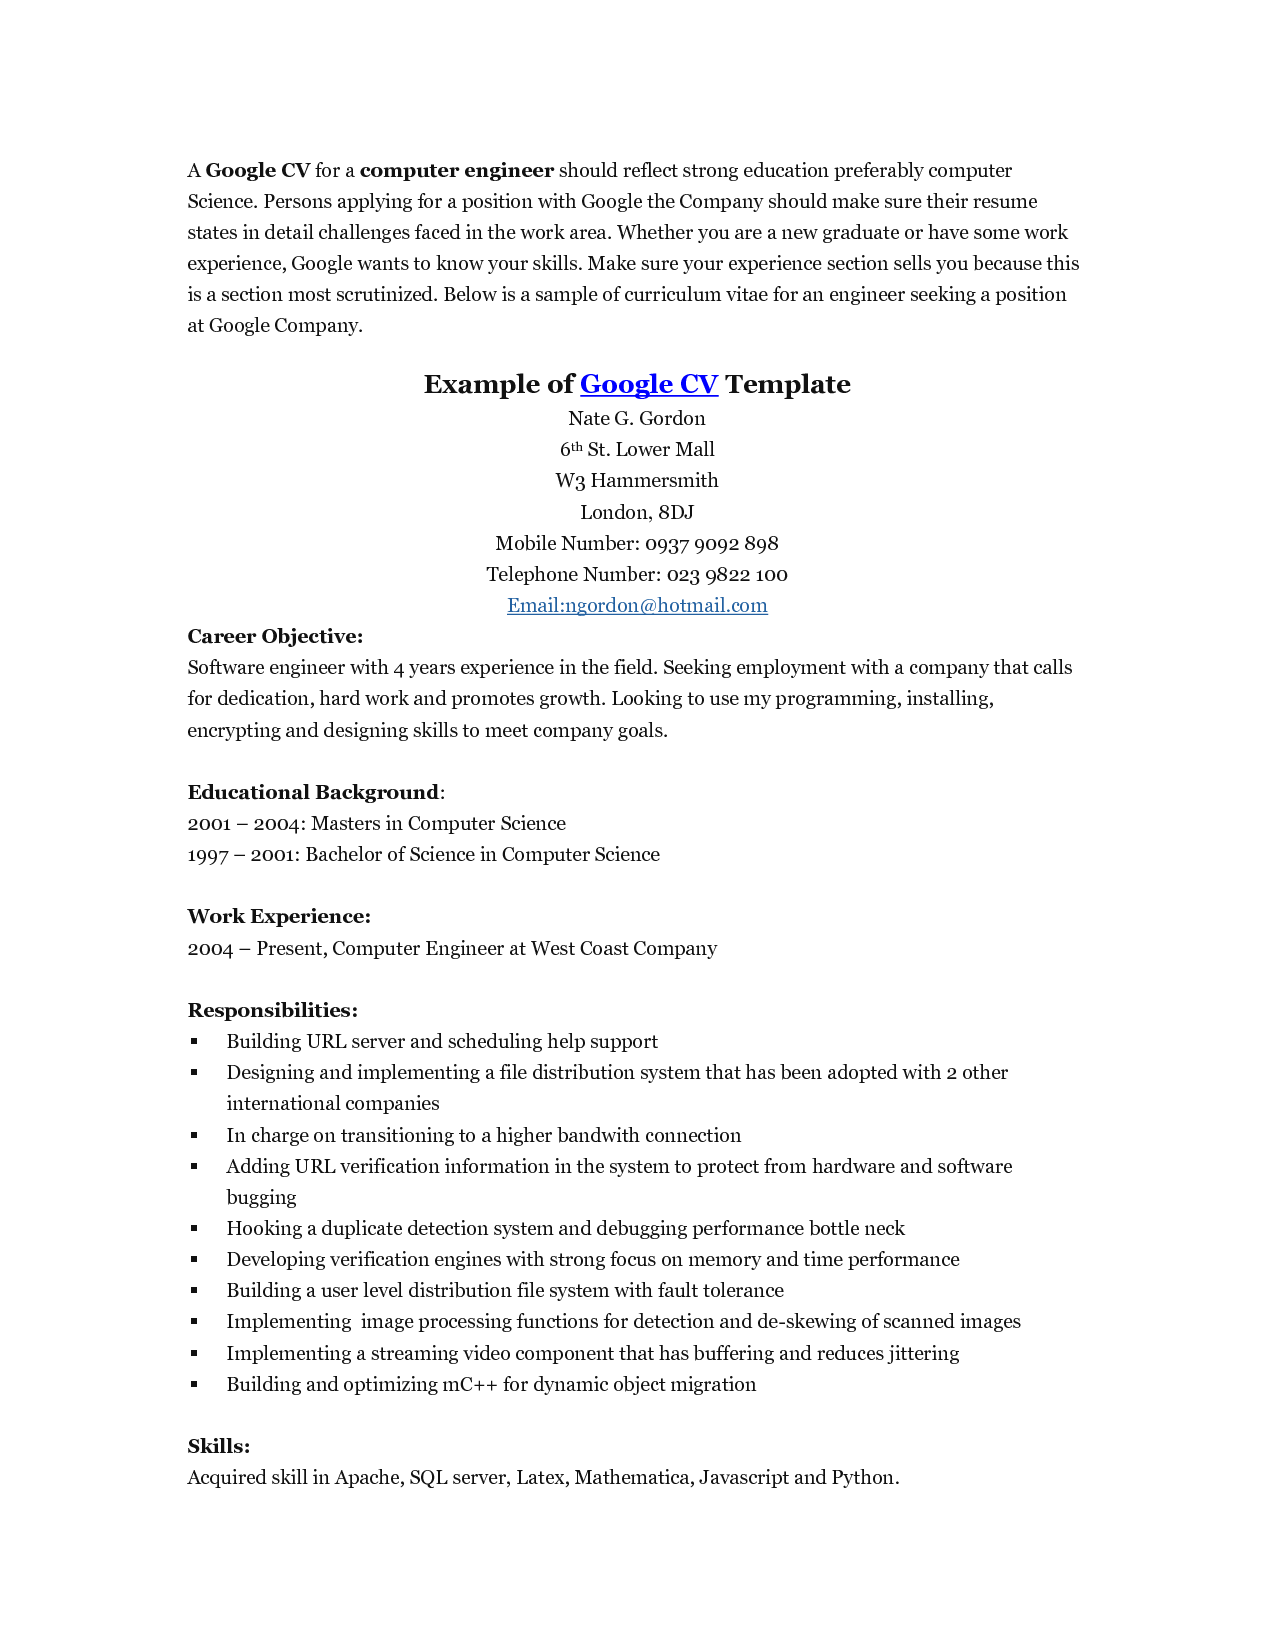 Example Job Resume Google Templates Resume 2015  Httpwwwjobresumewebsitegoogle